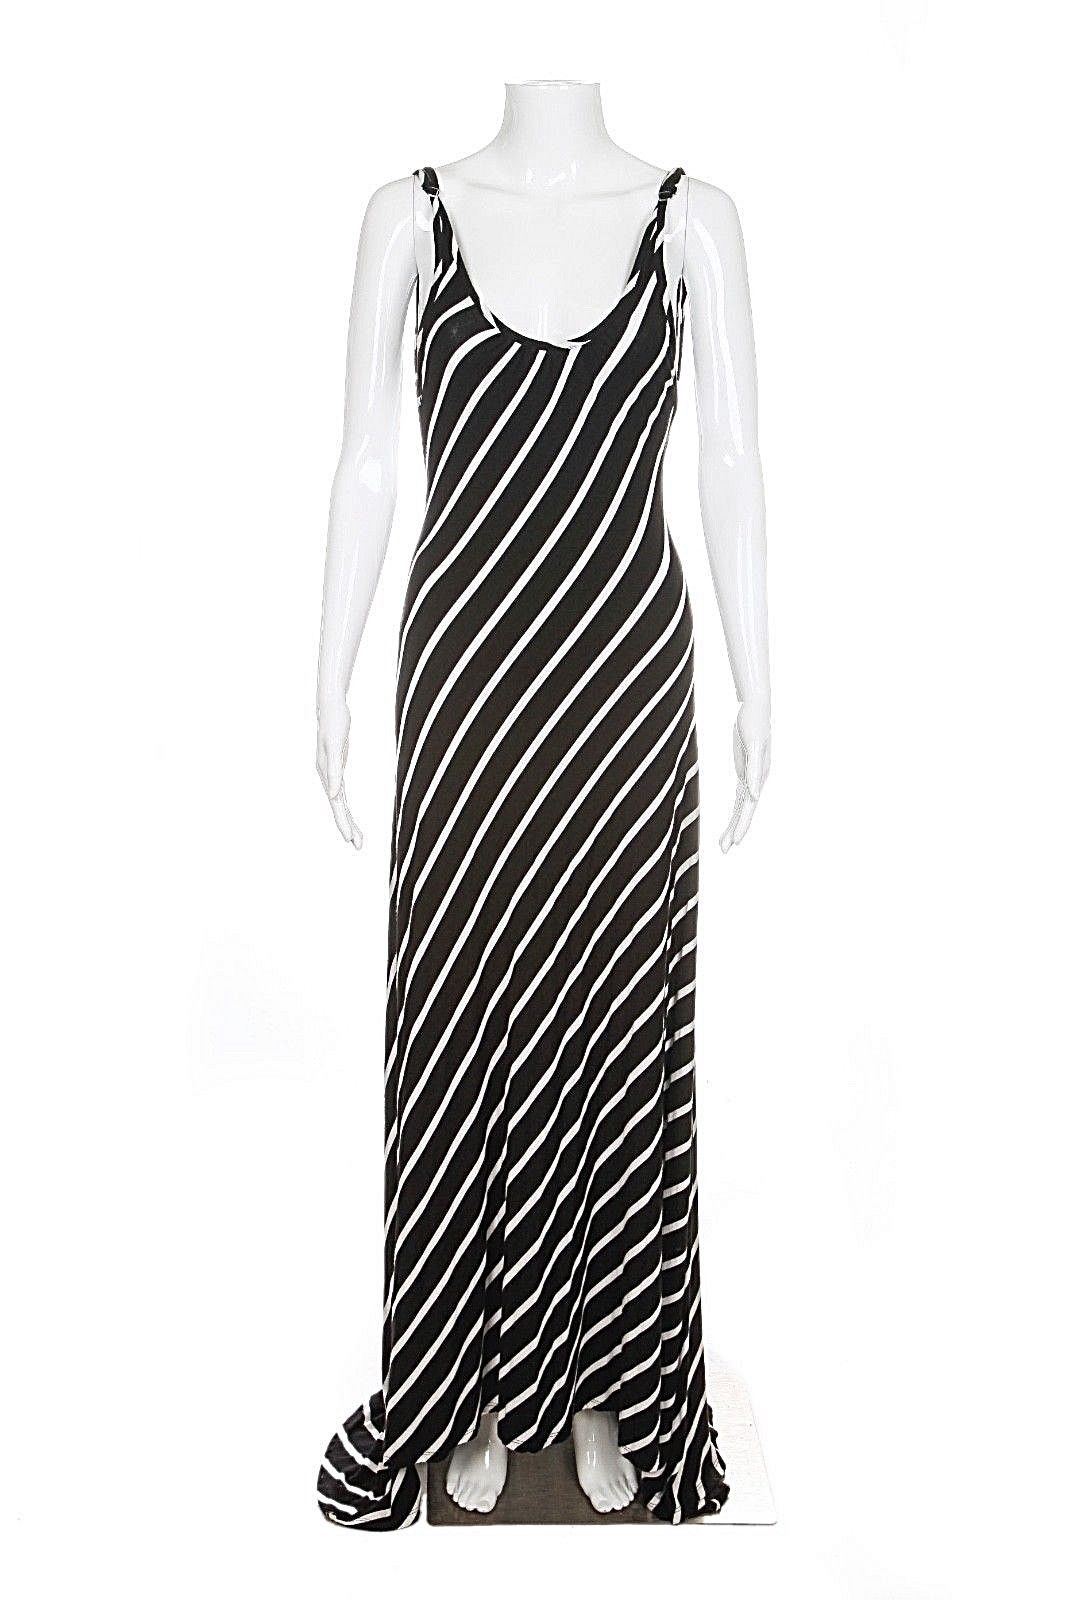 FEATHERS Striped Sexy Low Back Maxi Dress Small Black White Stretchy Jersey